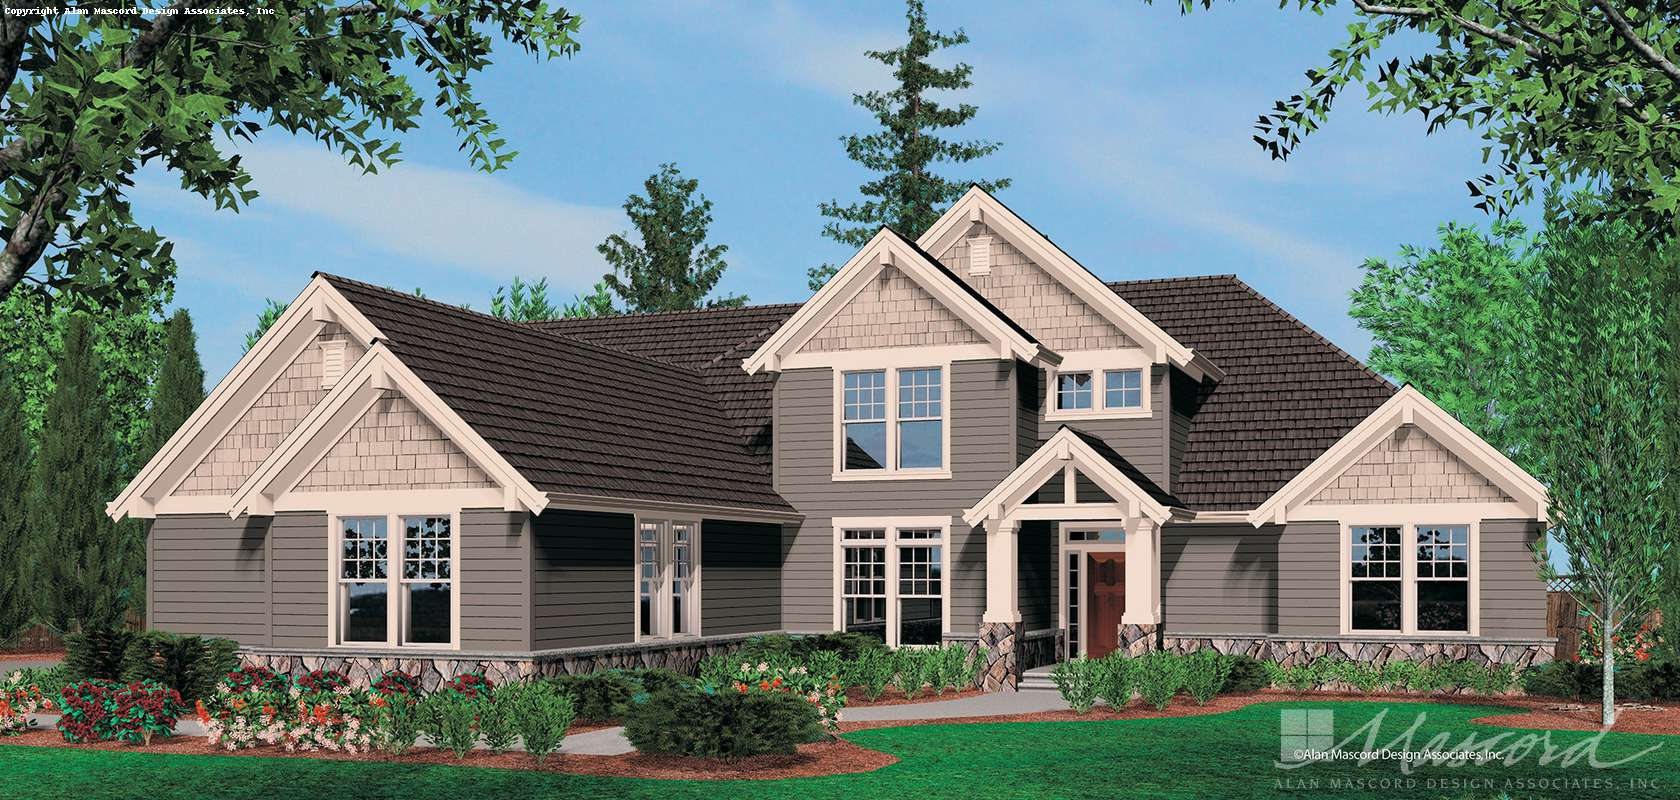 Mascord House Plan 2352B: The Amarantha